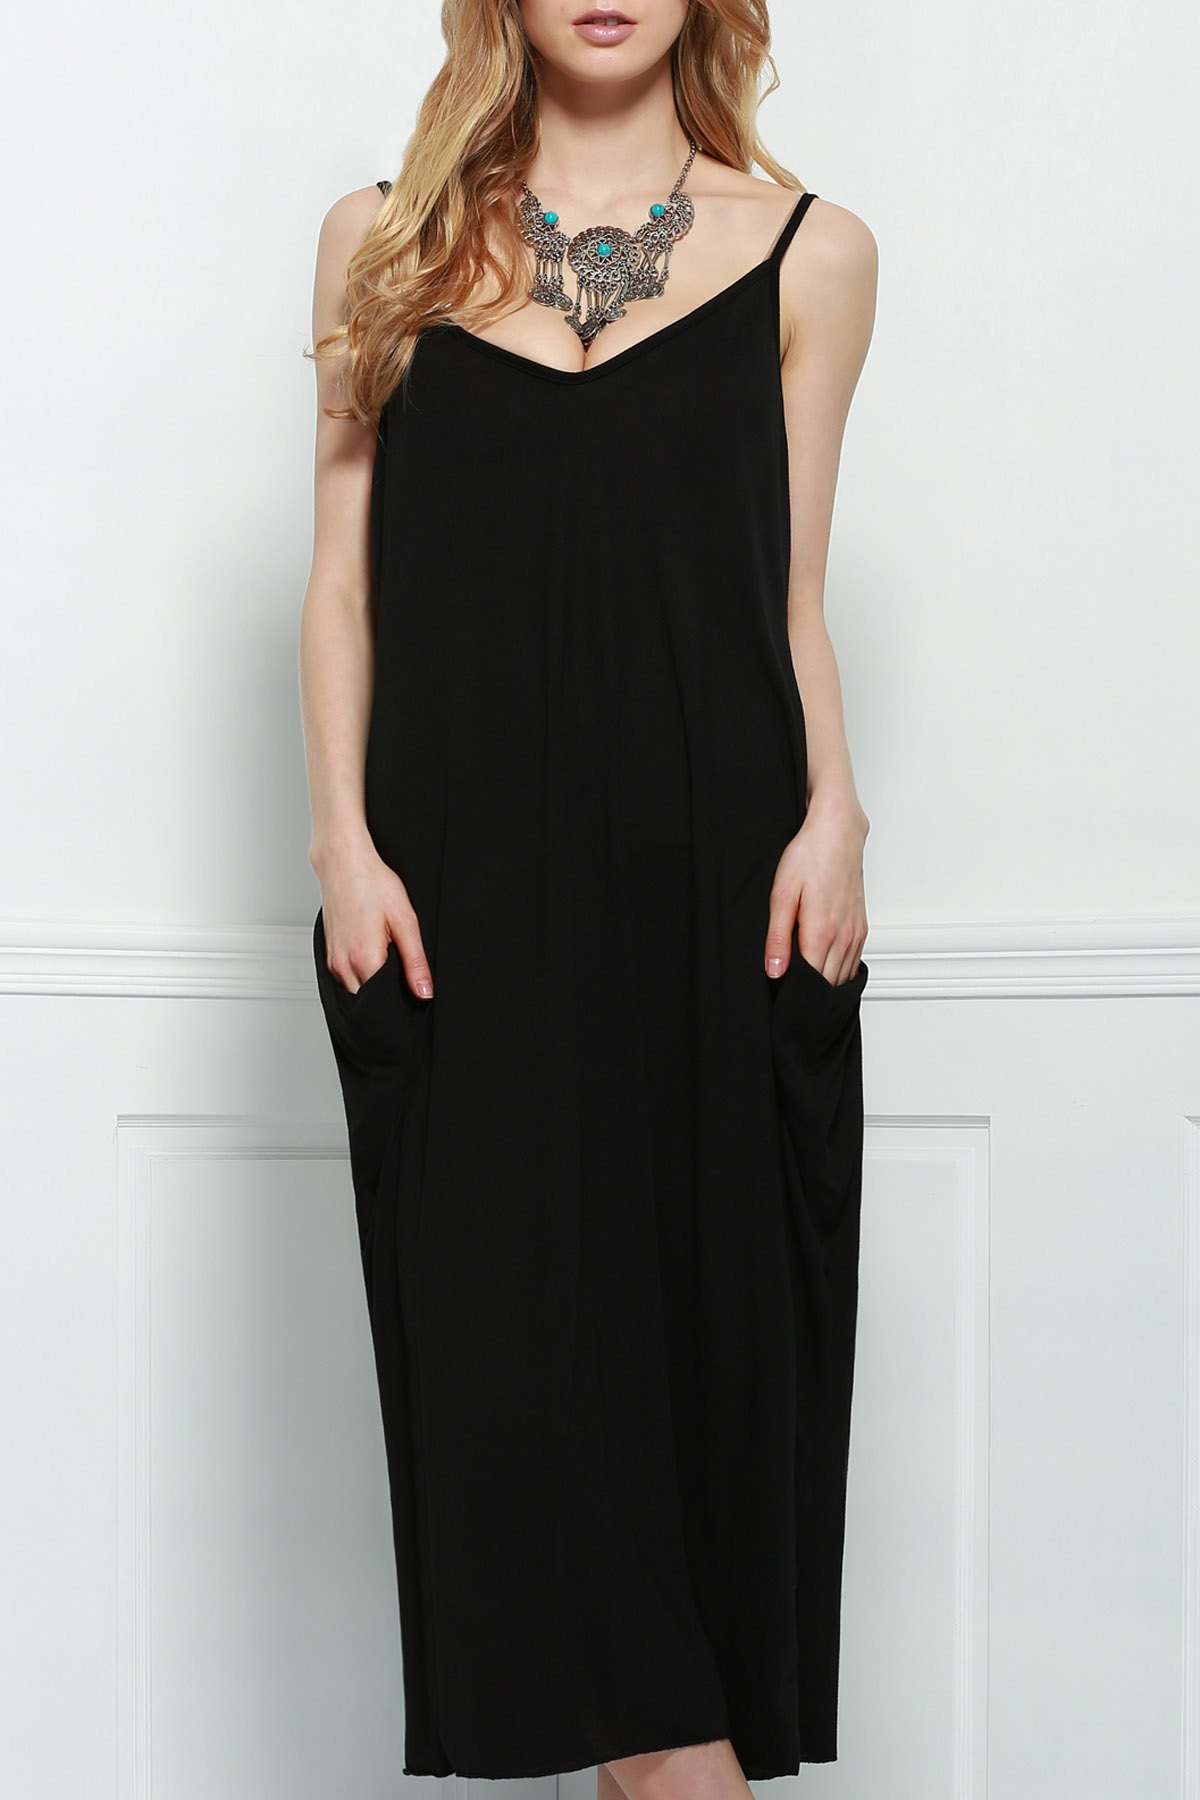 Stylish Spaghetti Strap Solid Color Loose-Fitting Women's Maxi Dress - BLACK M